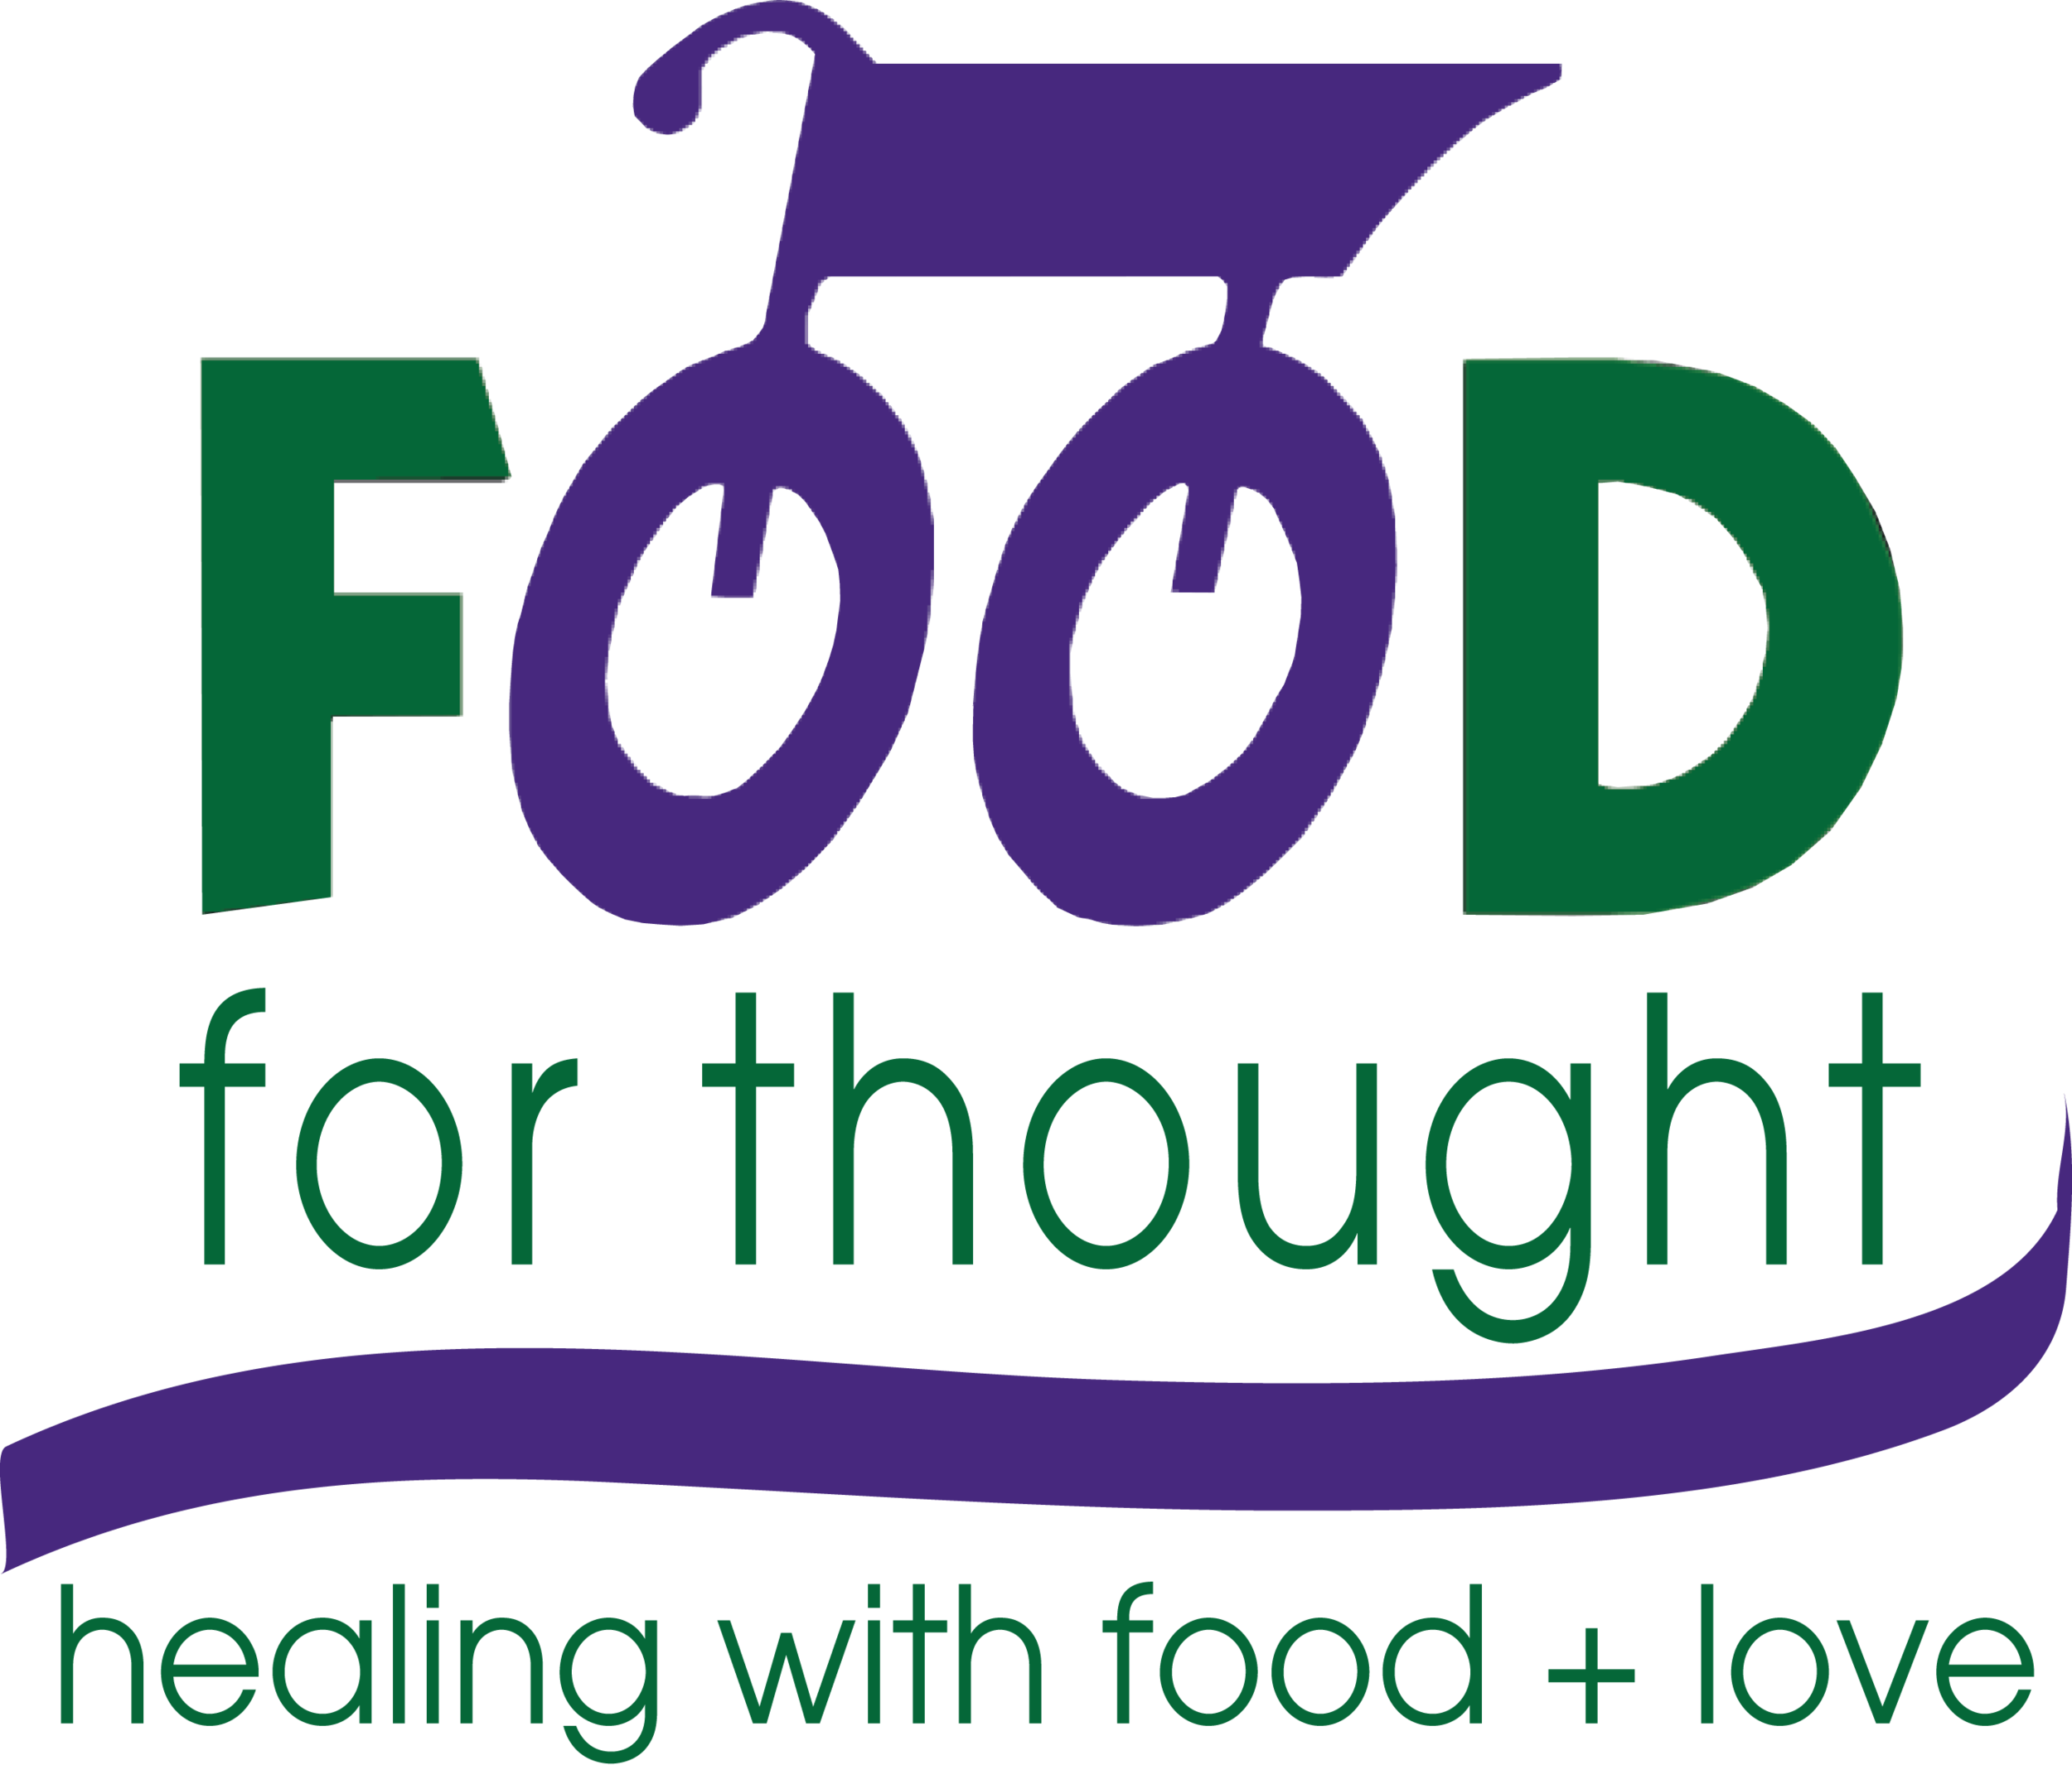 FFT-logo-for-web.png